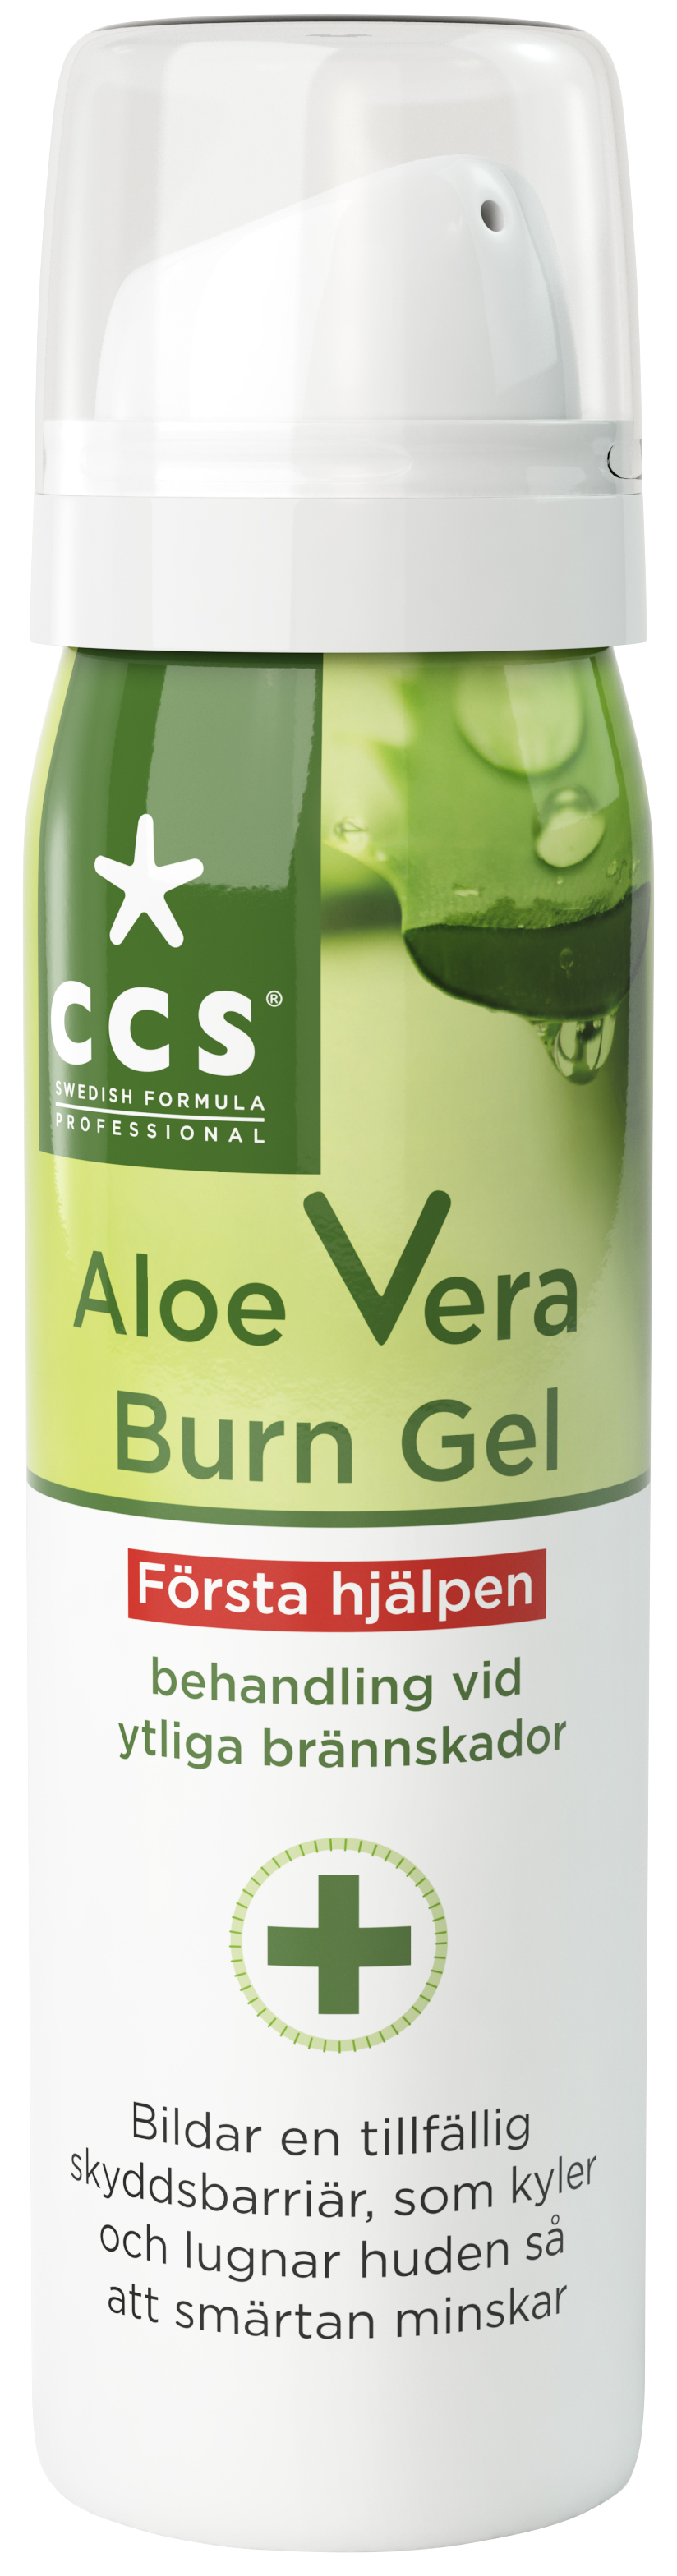 burn gel apotek